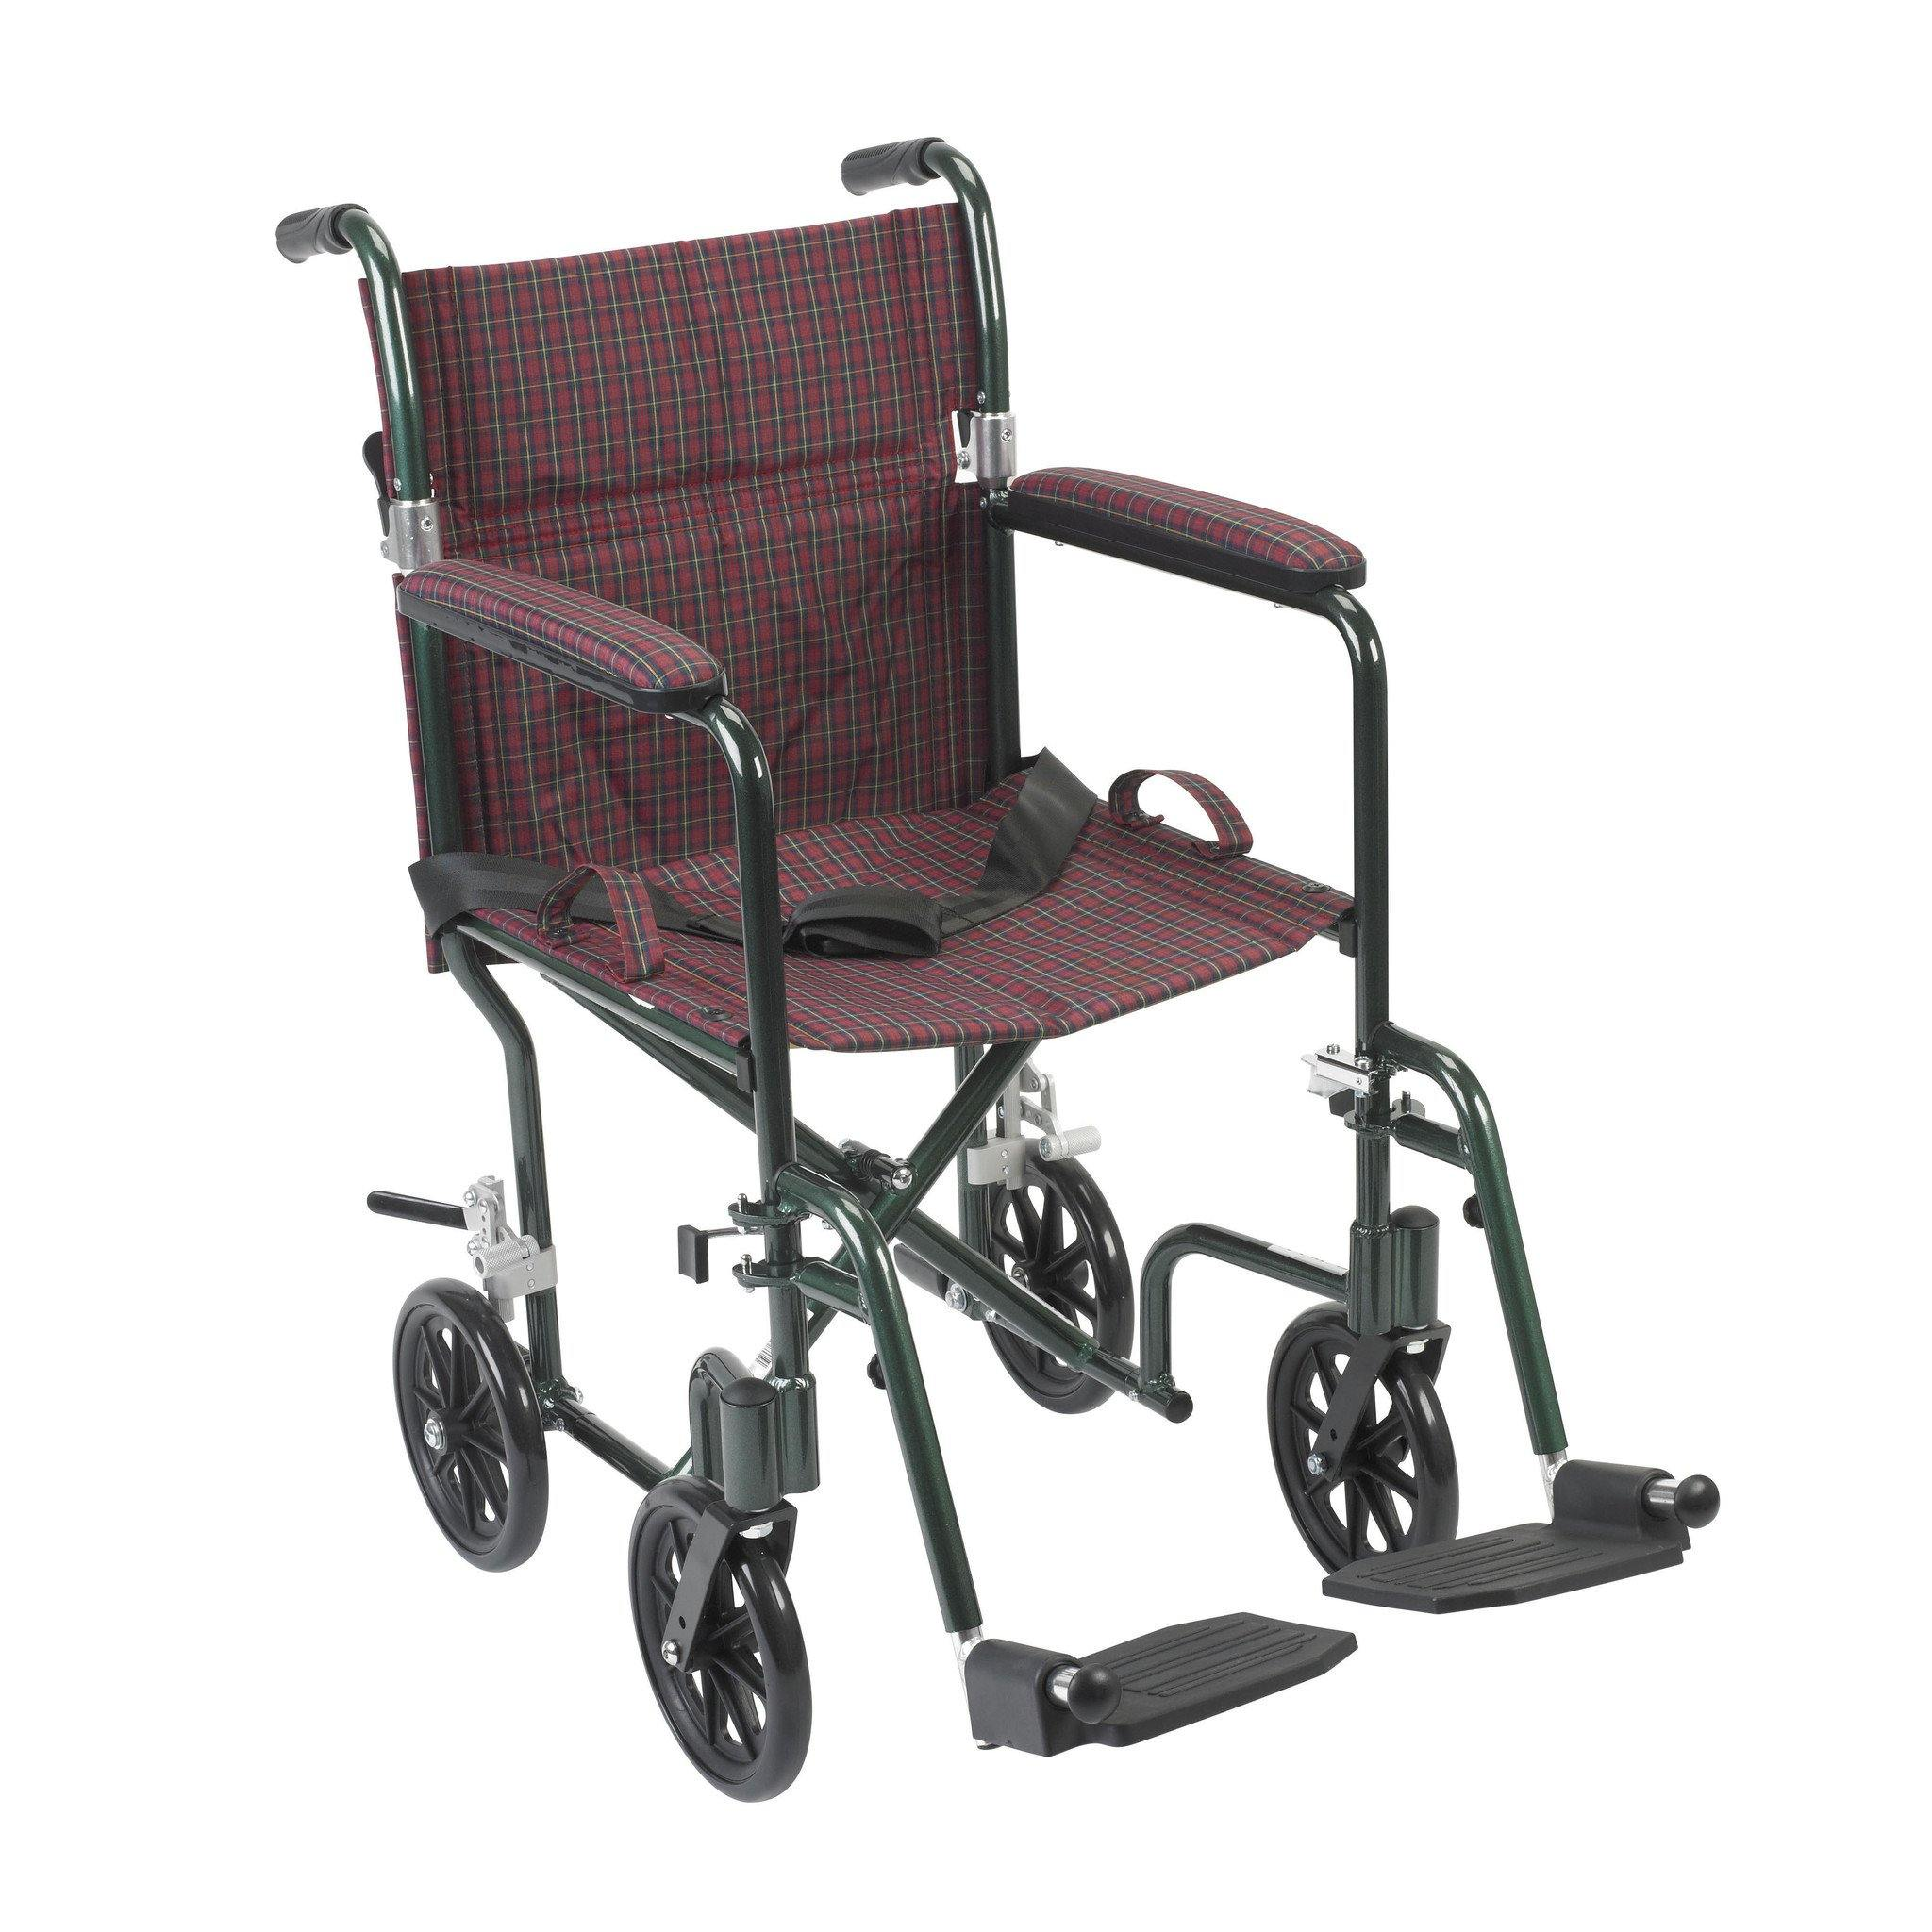 Drive Flyweight Lightweight Folding Transport Wheelchair